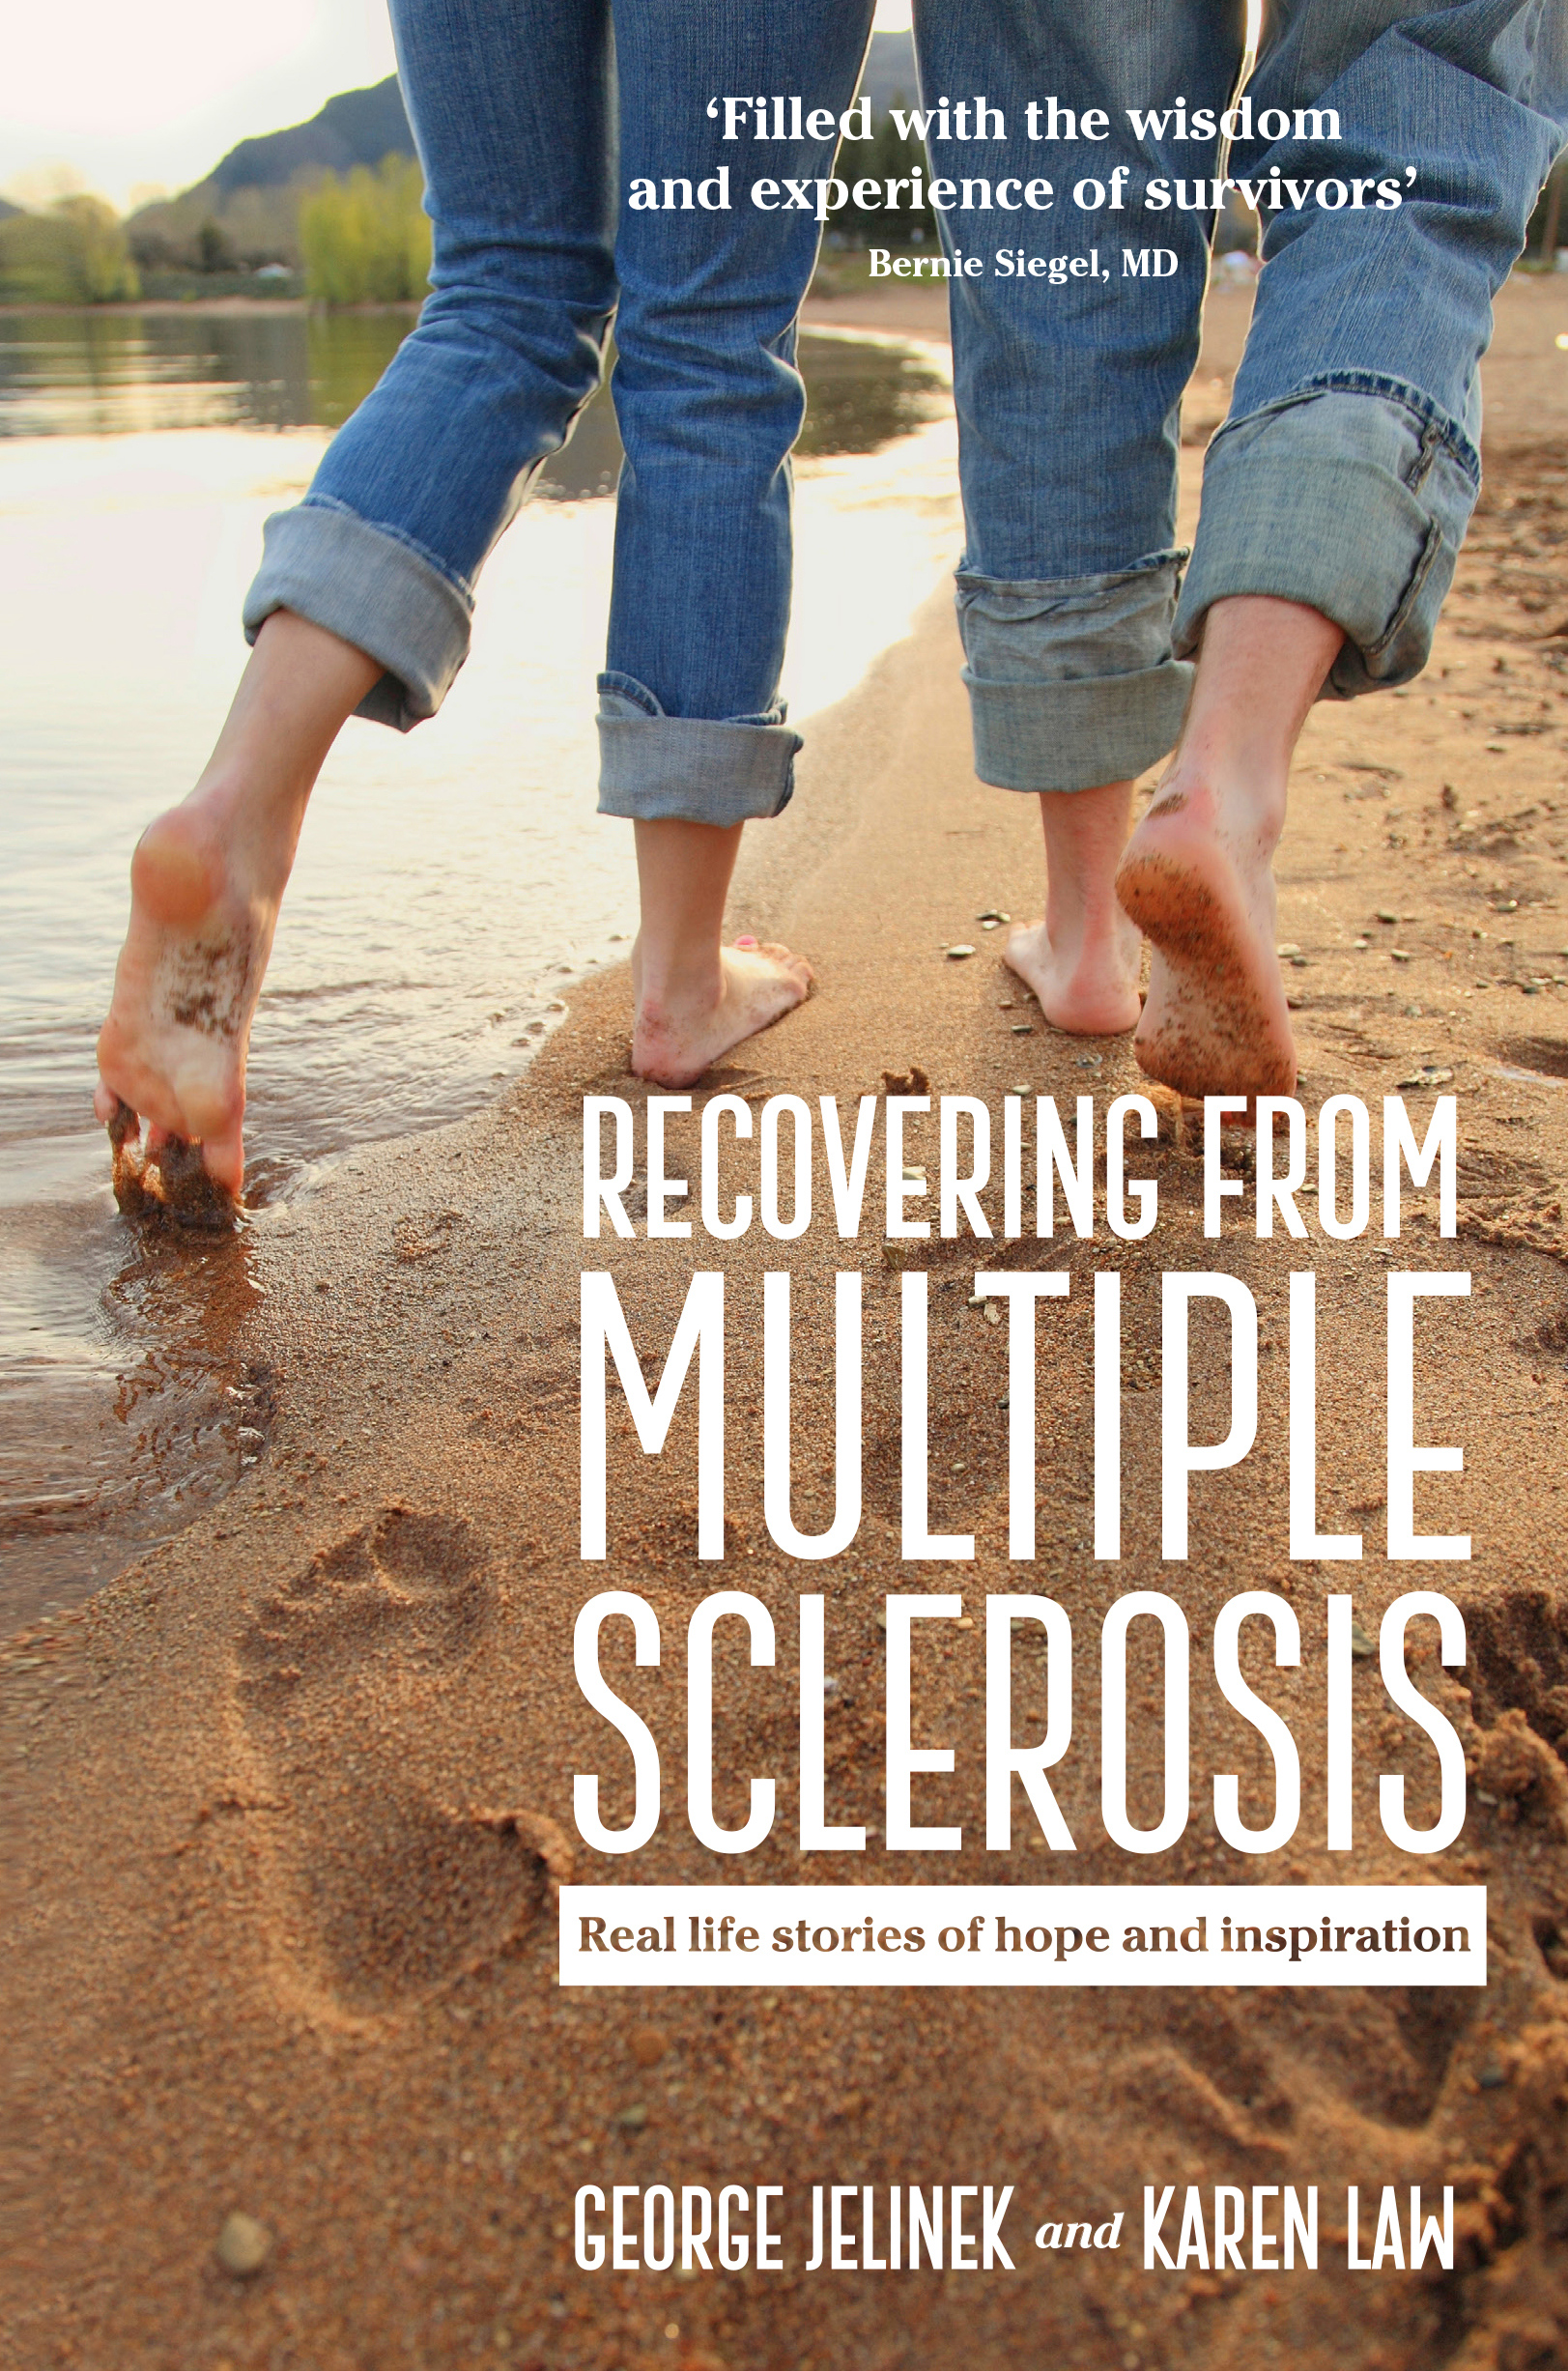 Recovering from Multiple Sclerosis - George Jelinek and